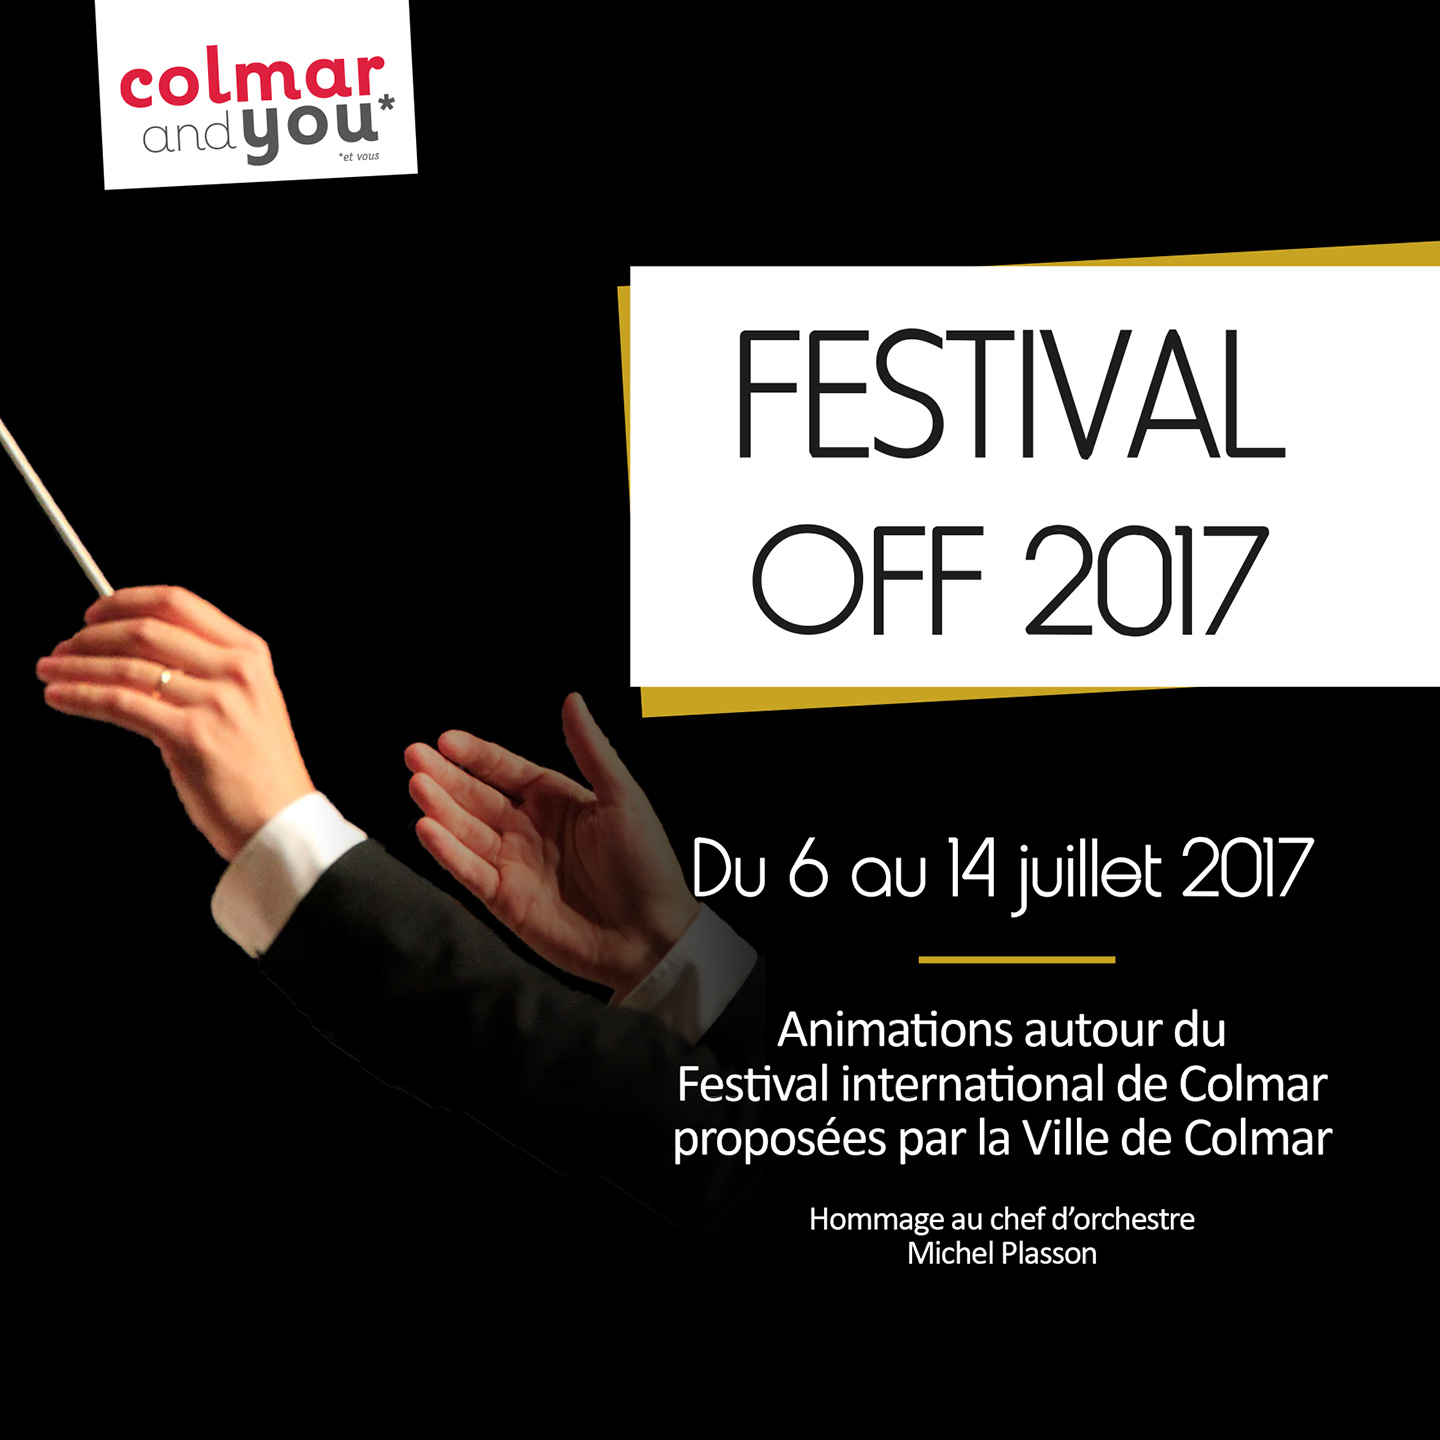 le festival international de colmar ville de colmar. Black Bedroom Furniture Sets. Home Design Ideas